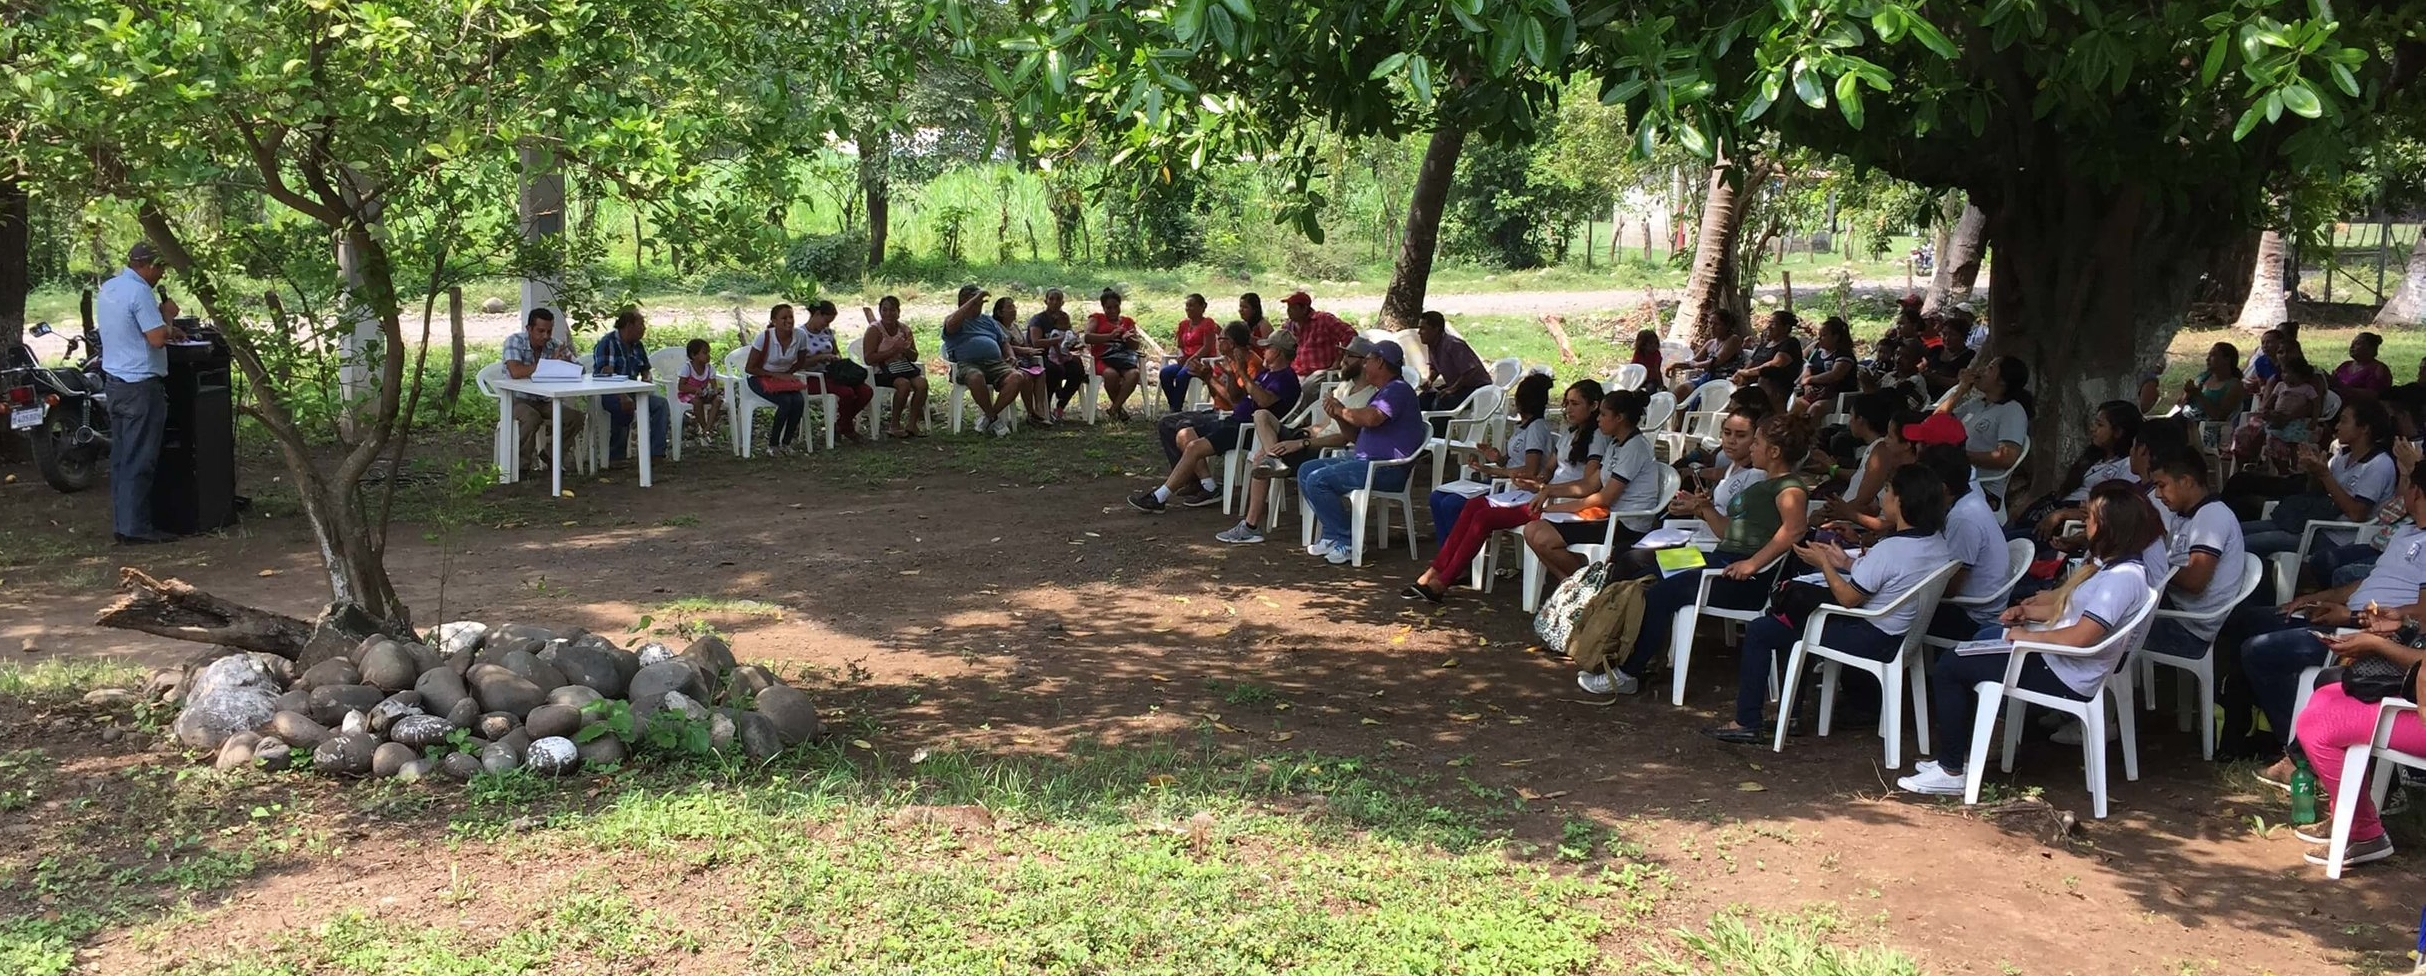 In a village near San Pedro Alvarado, Guatemala, Manuel and a group of community leaders gather a group to talk about their trash problem. Before setting up for this meeting, a new Christian Rancher group was established that will make this project their way to demonstrate their love and concern for the people of their community.